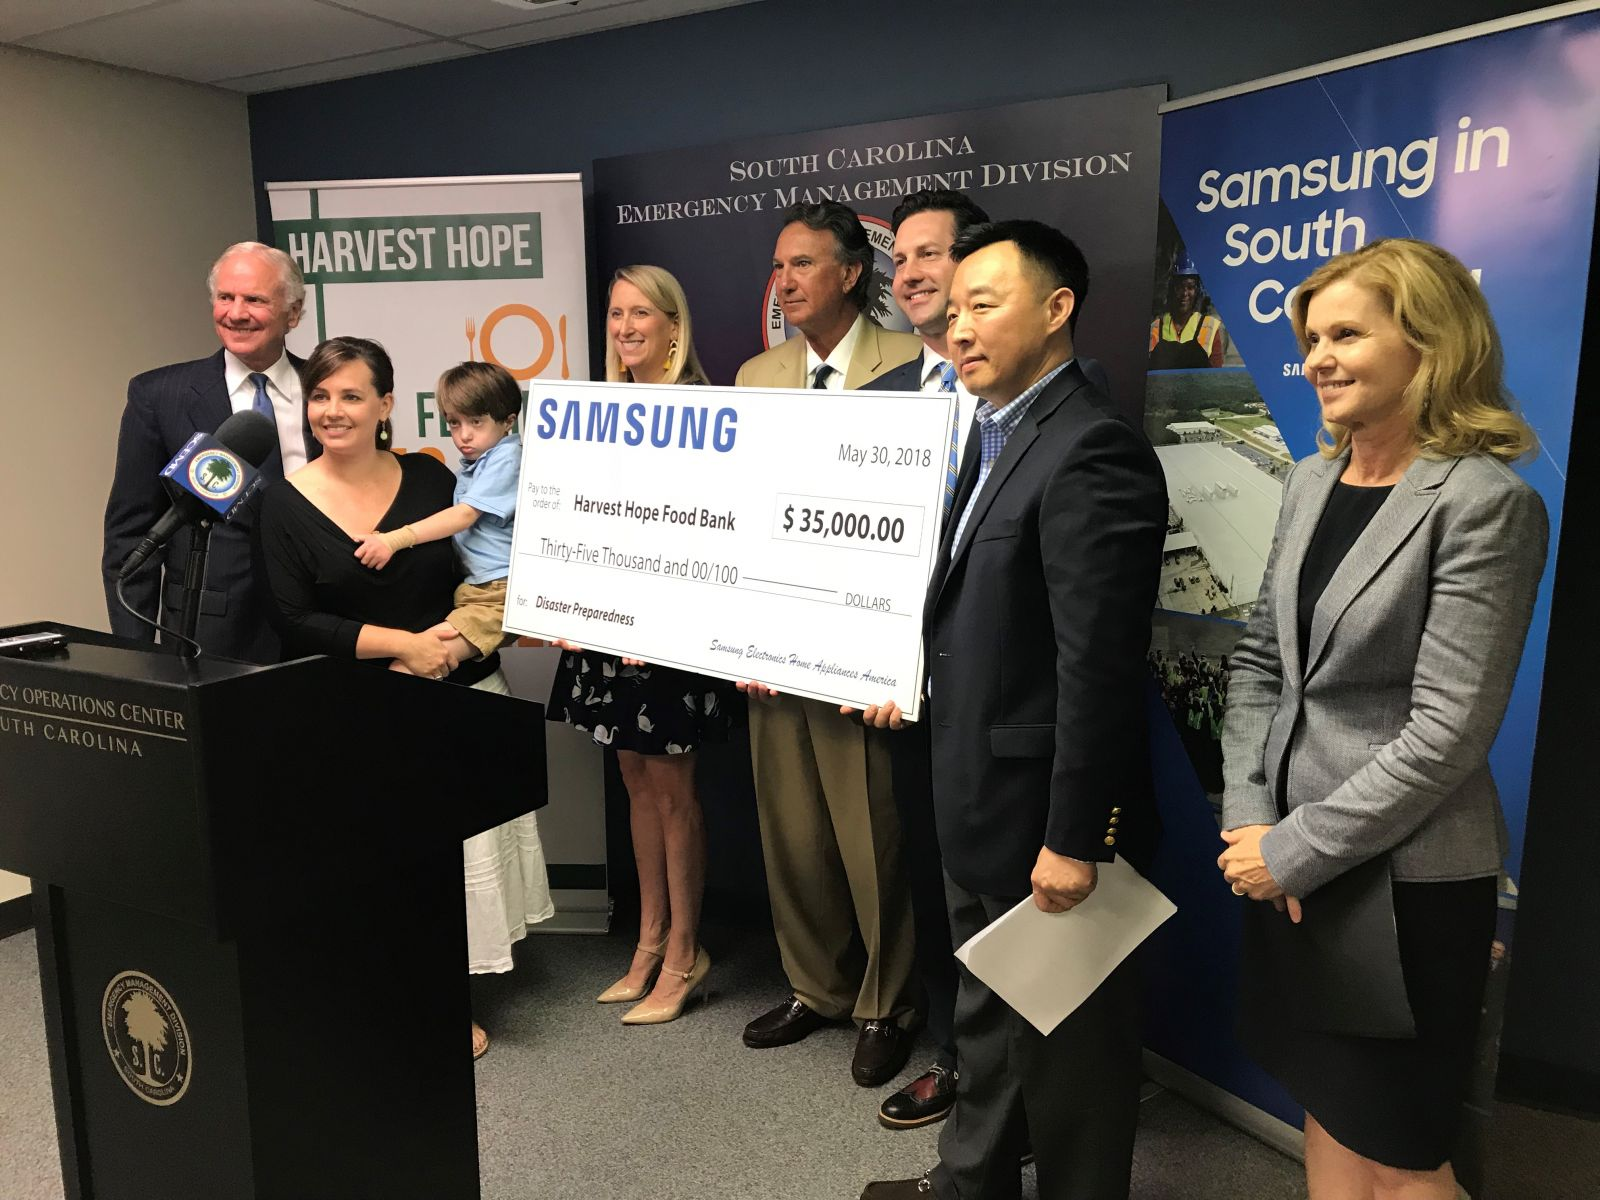 Left to right: Gov. Henry McMaster joins Samsung, Harvest Hope and DHEC officials at the presentation of Samsung's $35,000 donation to Harvest Hope. (Photo/Provided)